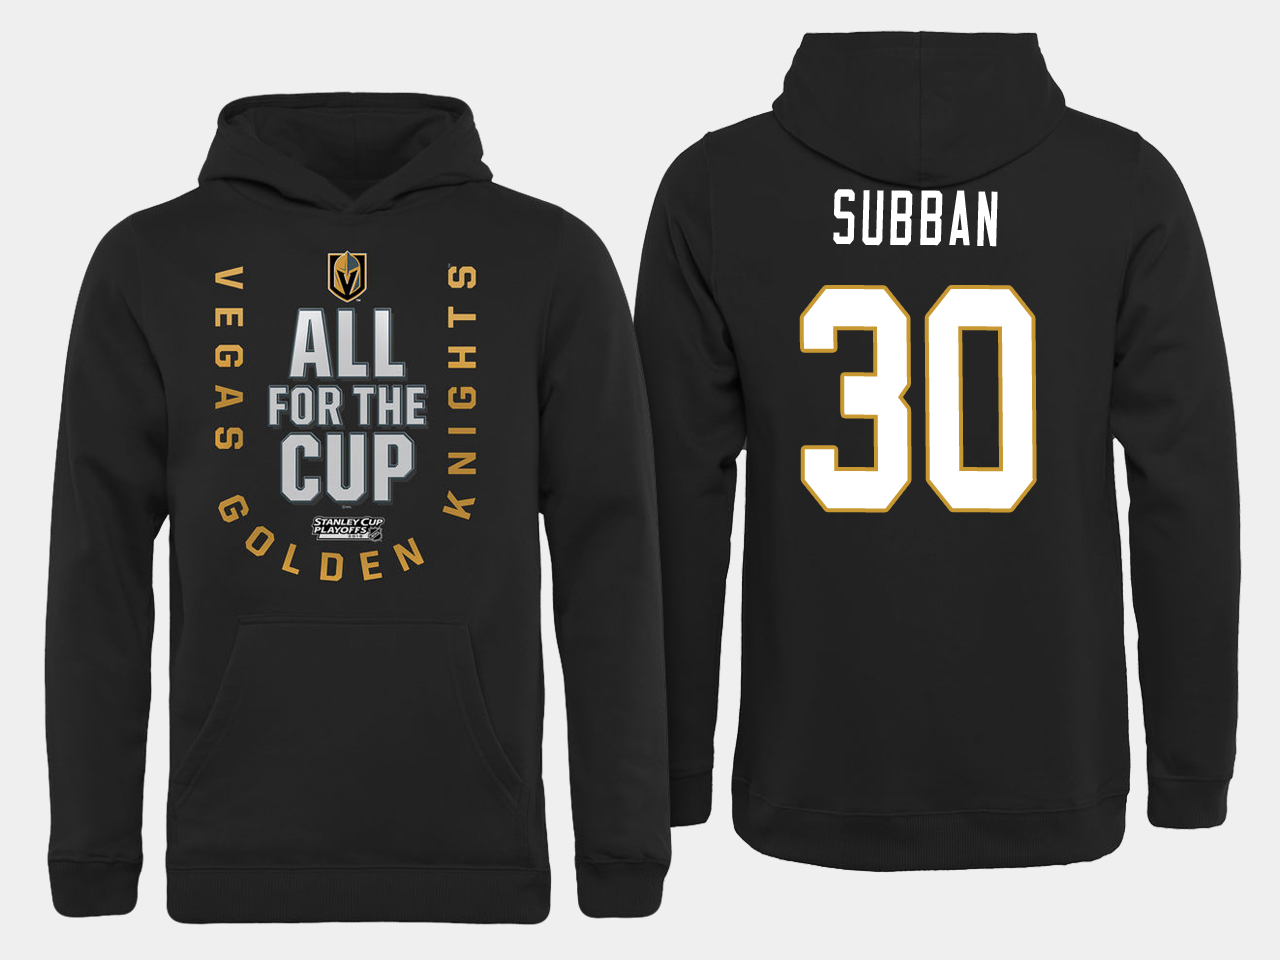 Men NHL Vegas Golden Knights 30 Subban All for the Cup hoodie